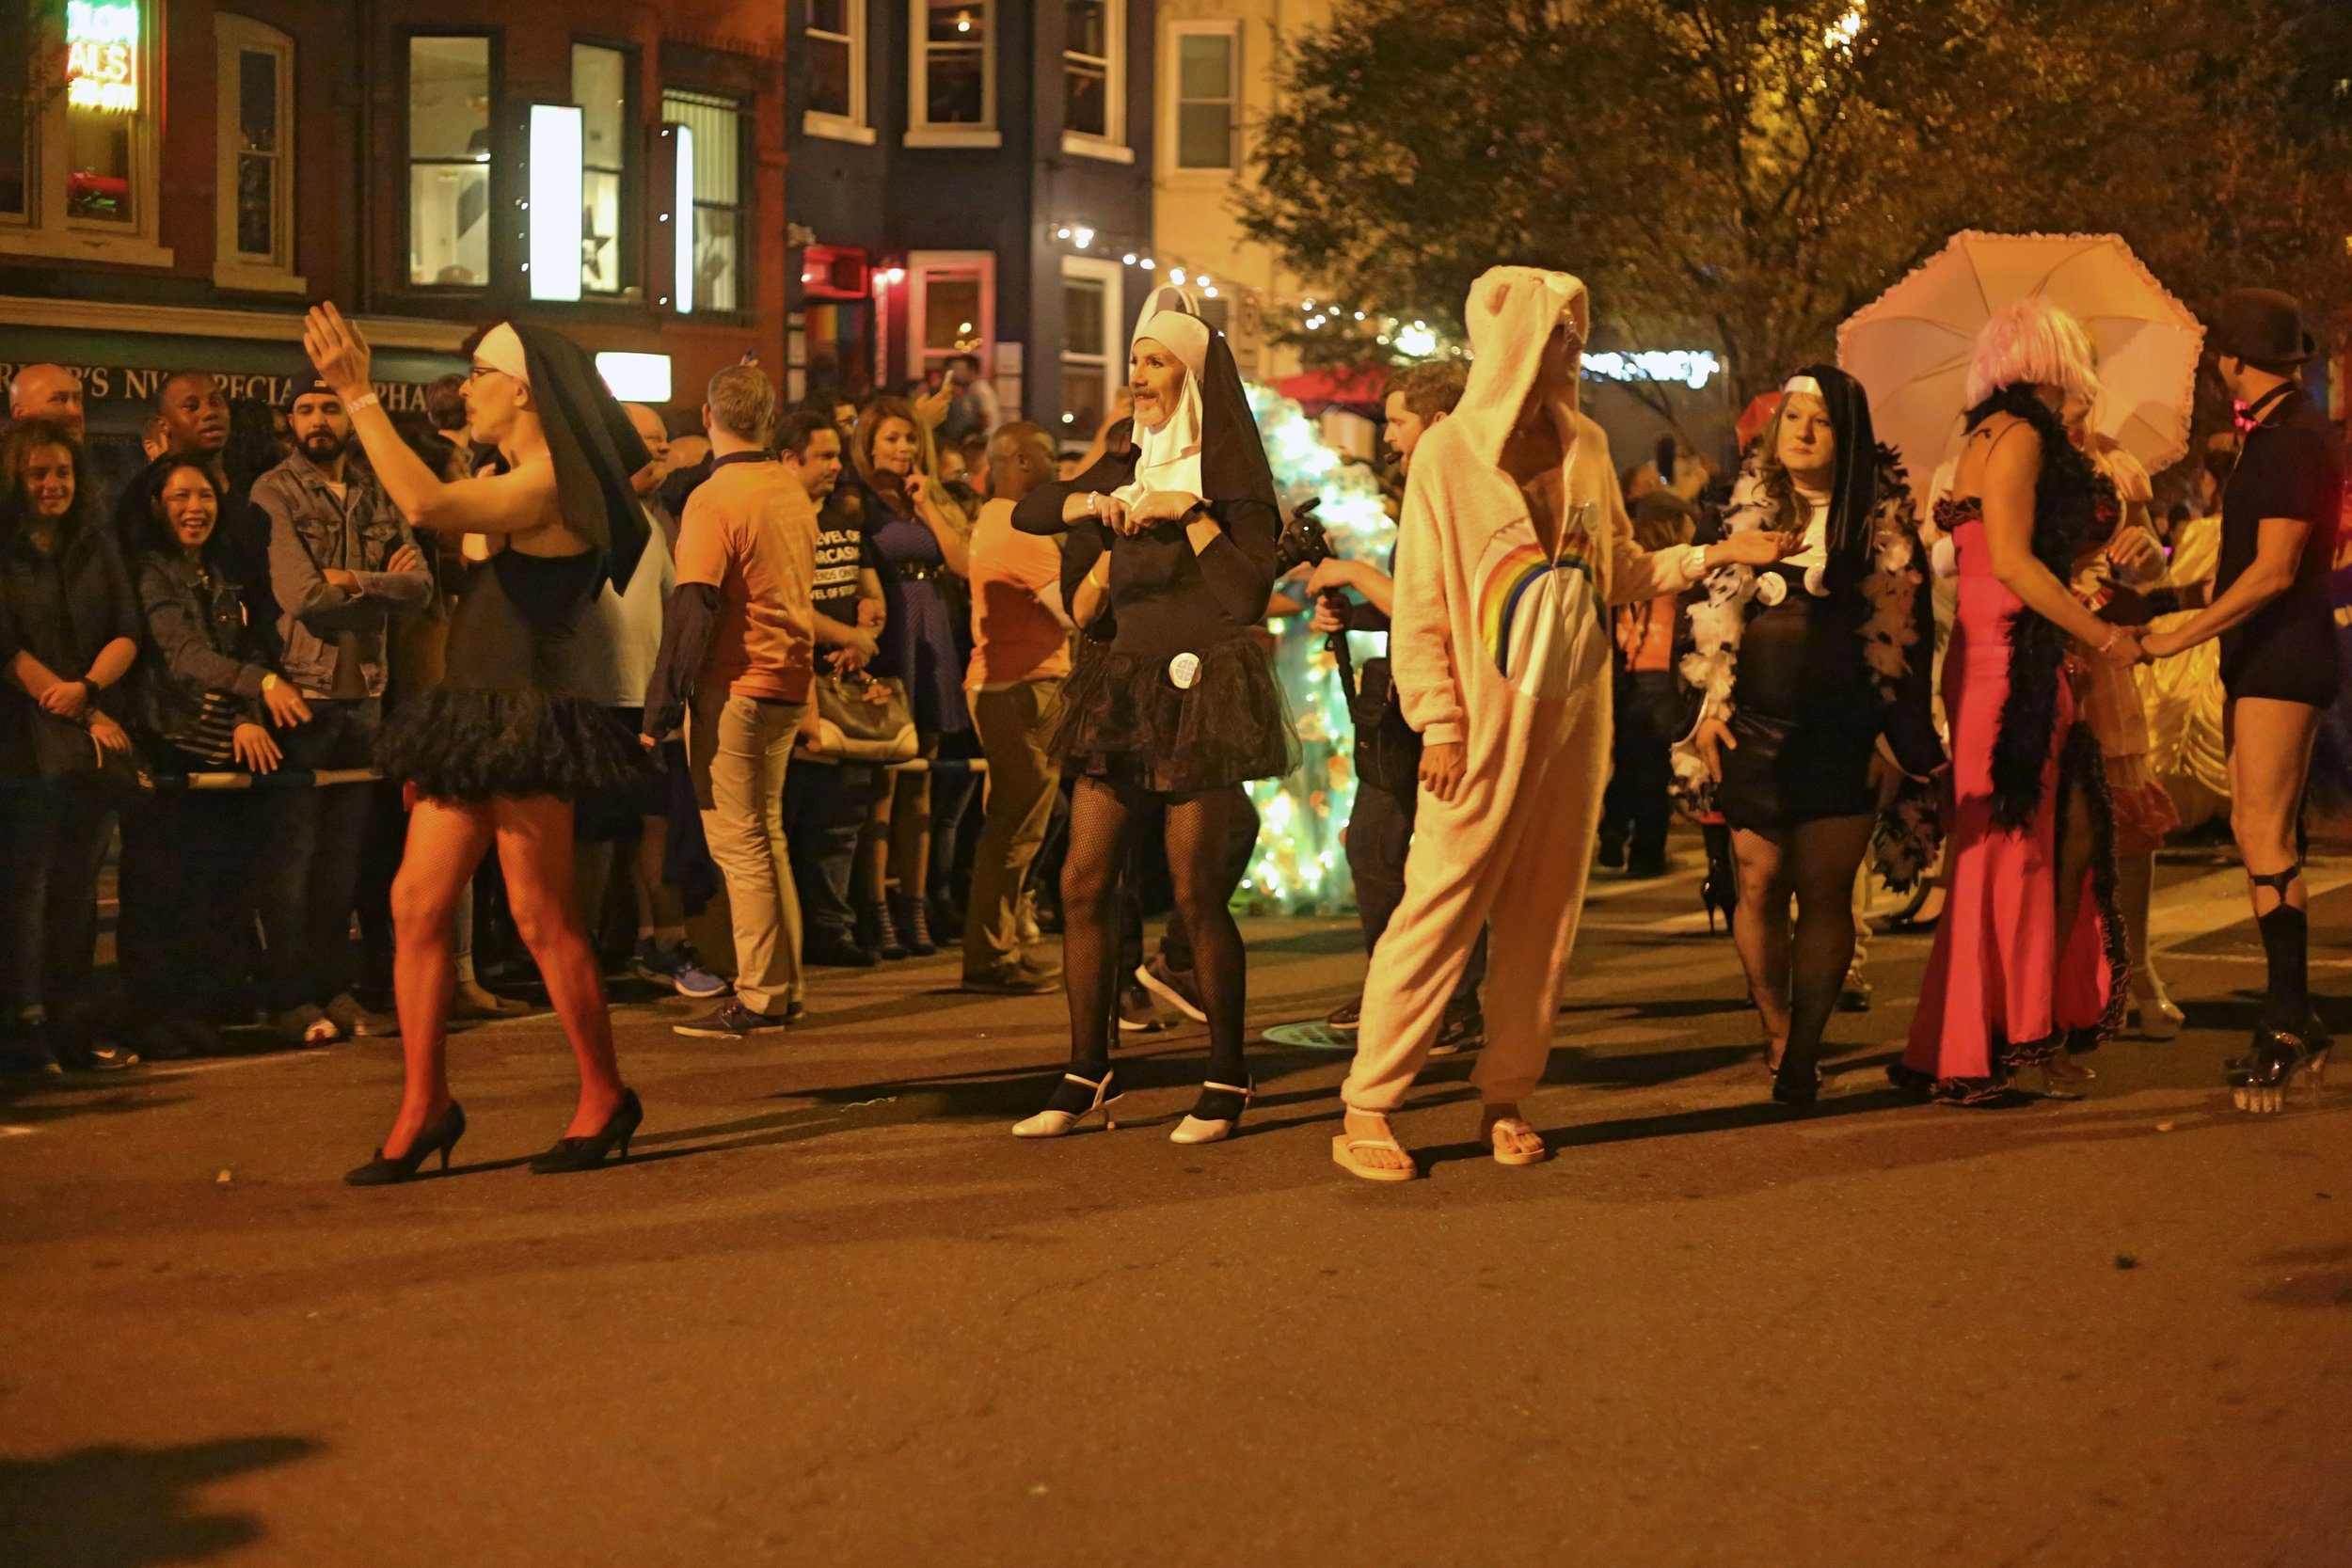 The 17th Street High Heel Race - An annual high heel race in Dupont Circle that is inclusive for all